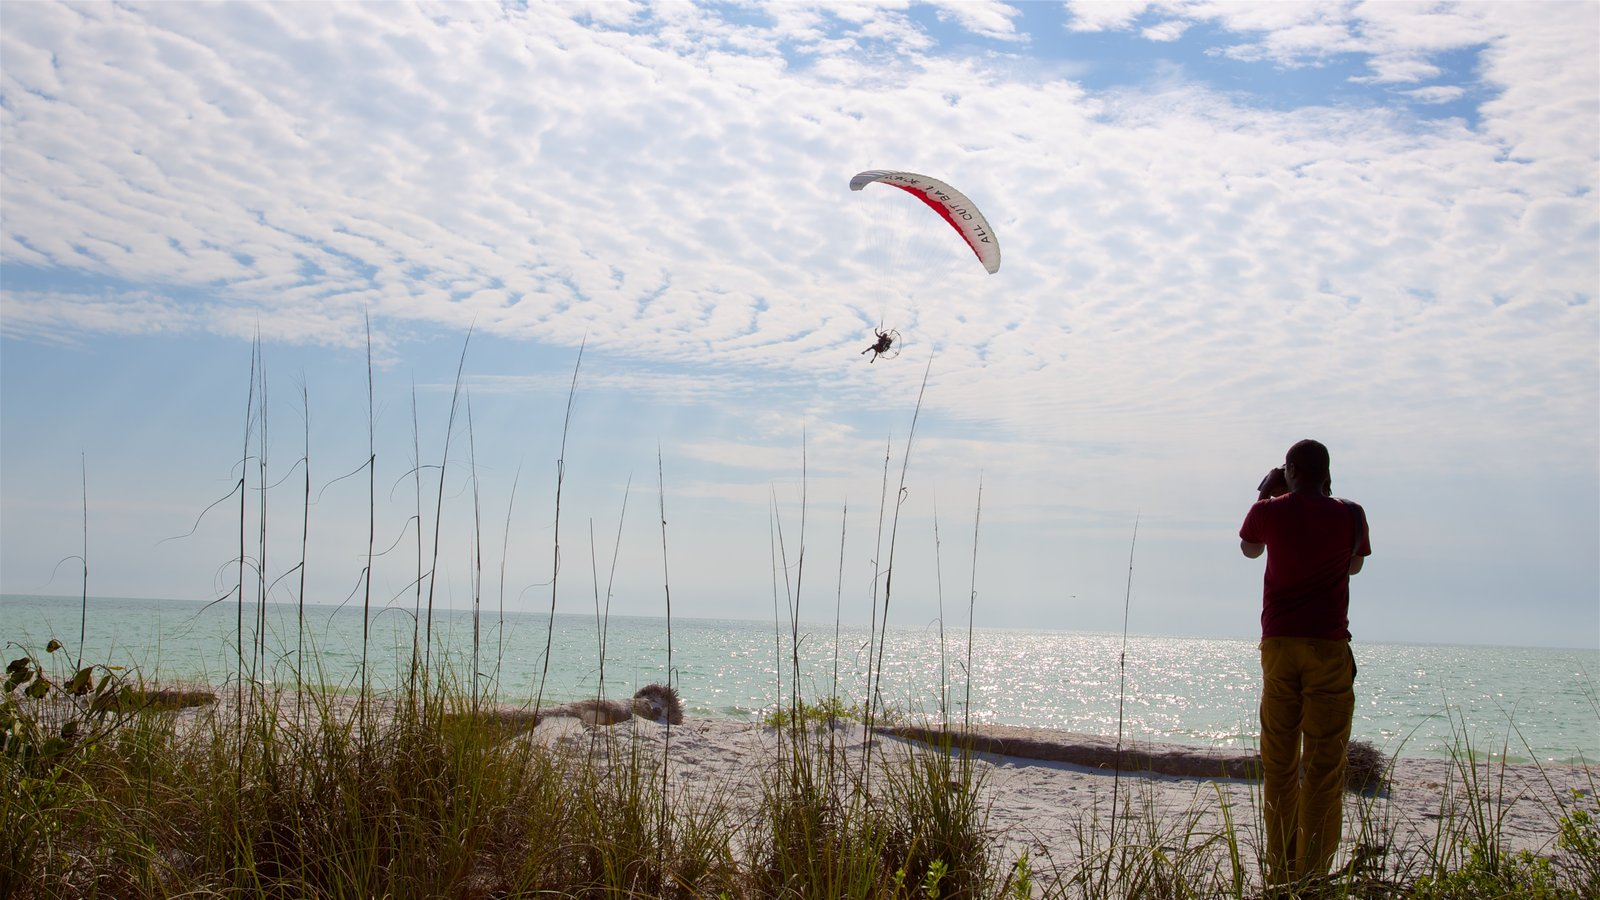 Barefoot Beach featuring skydiving, a sandy beach and a bay or harbor